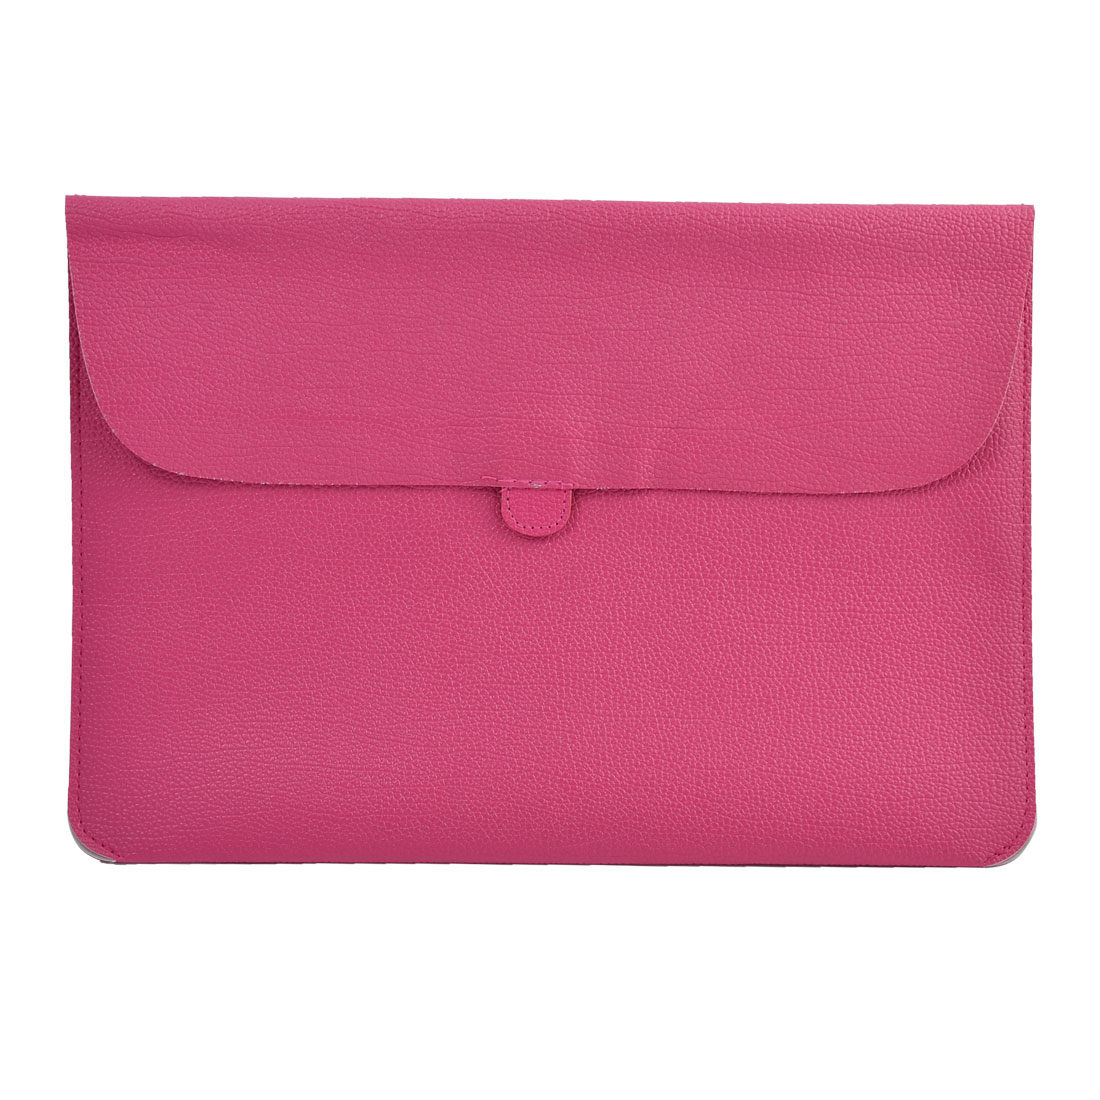 """Carrying Laptop Case Pouch Envelope Shape Tablet Sleeve Bag Fuchsia for Macbook 13.3"""""""